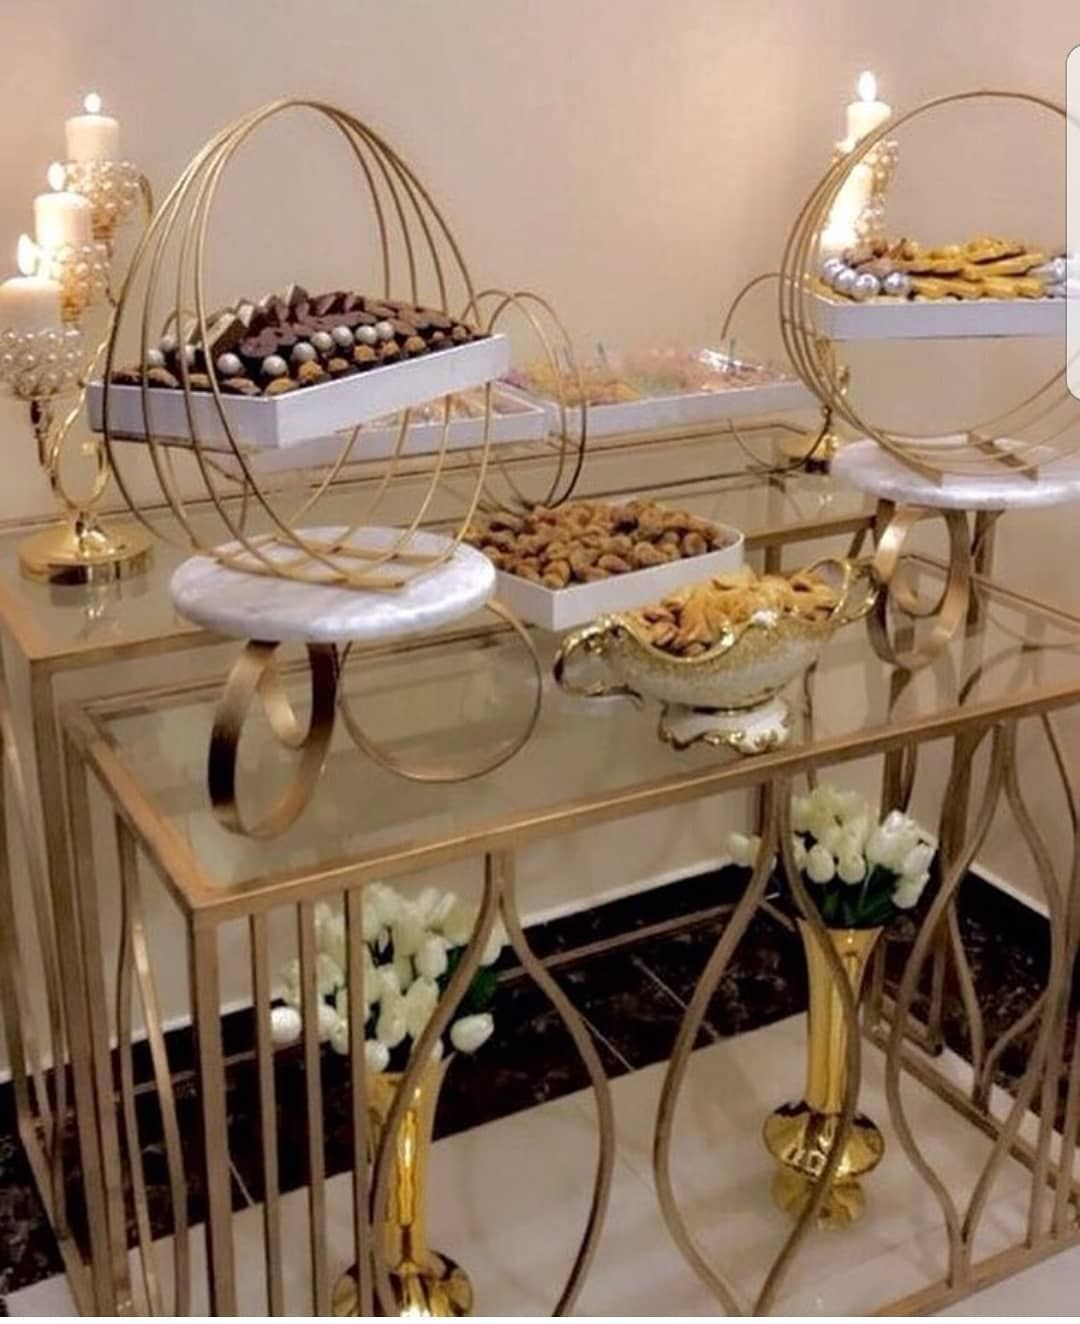 Stands Dinner Table Decor Buffet Decor Decor